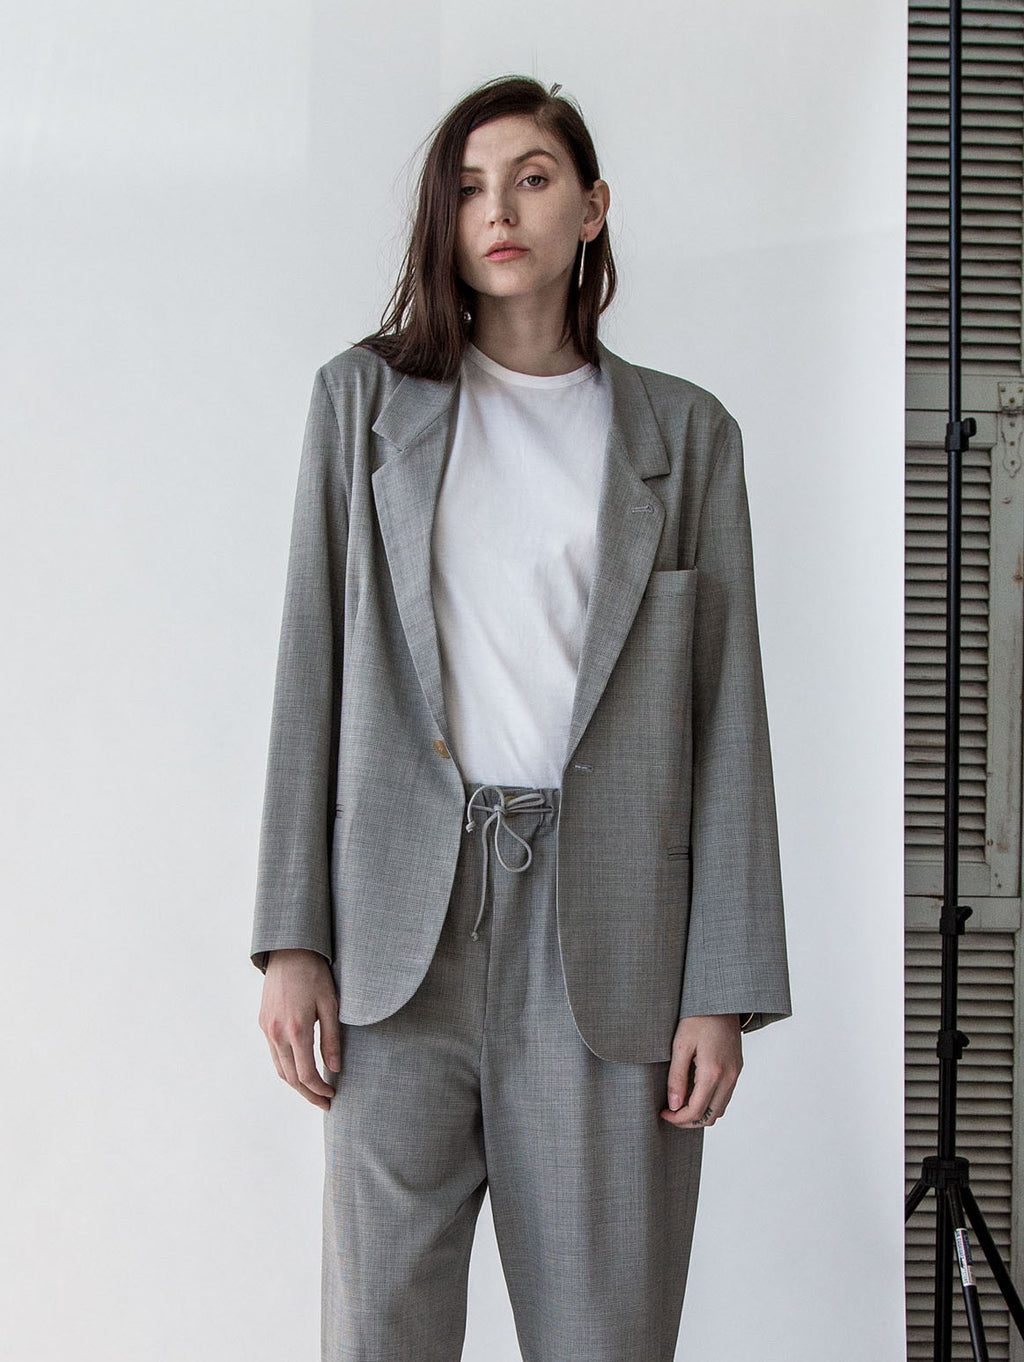 Oversized Blazer in Grey Mini Houndstooth - SOLD OUT